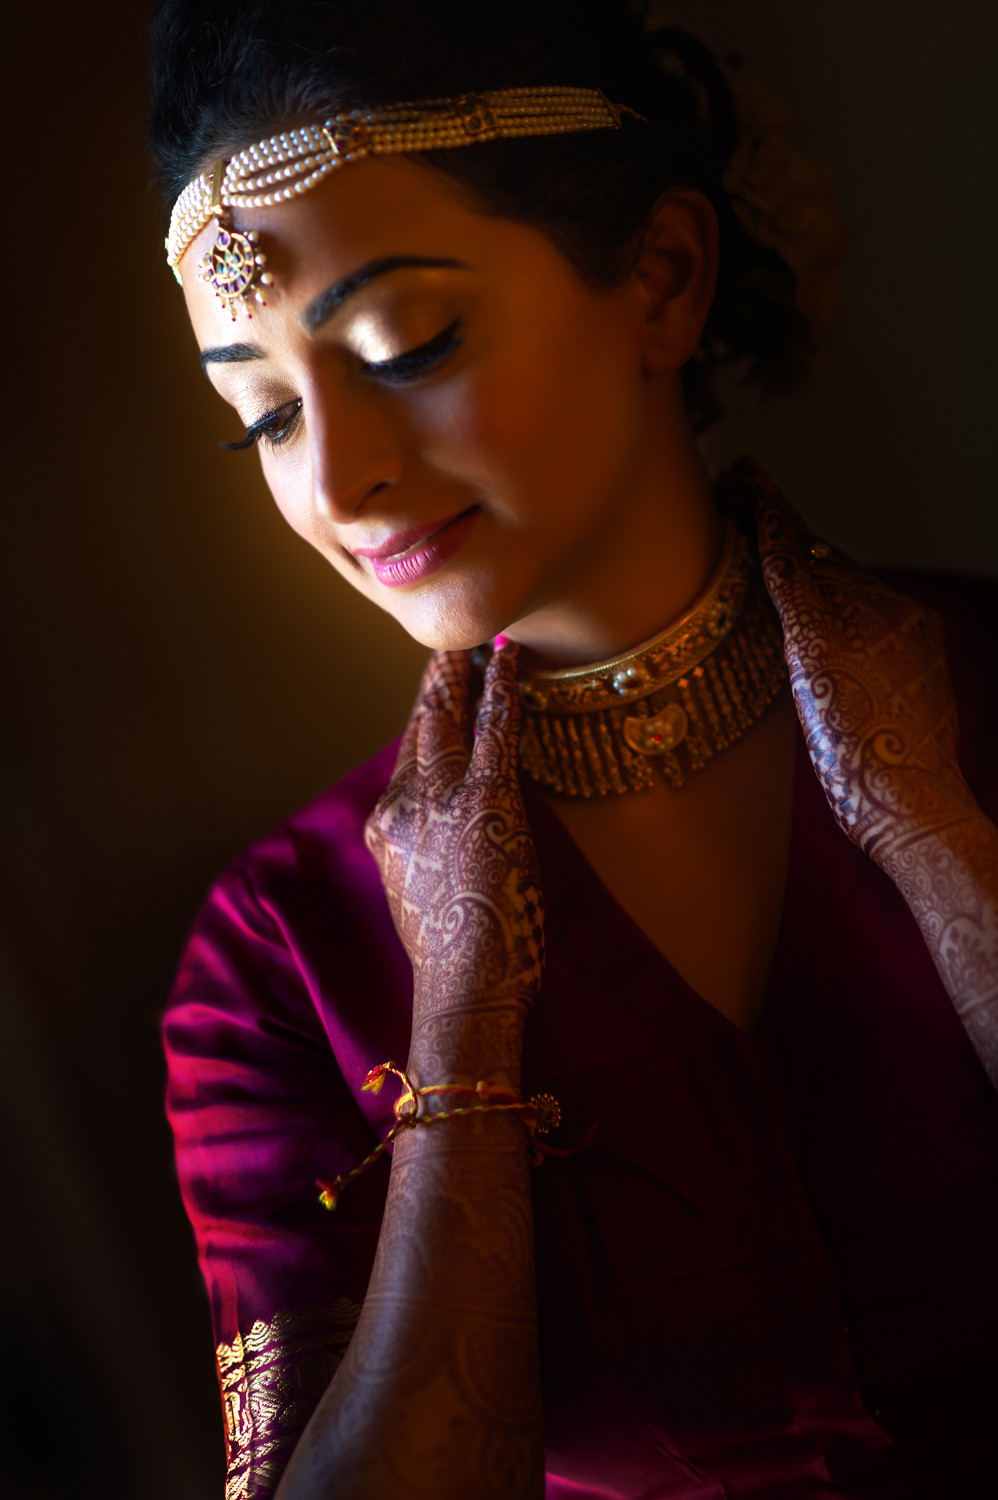 Bay area Indian wedding photographyBay area Indian wedding photographer